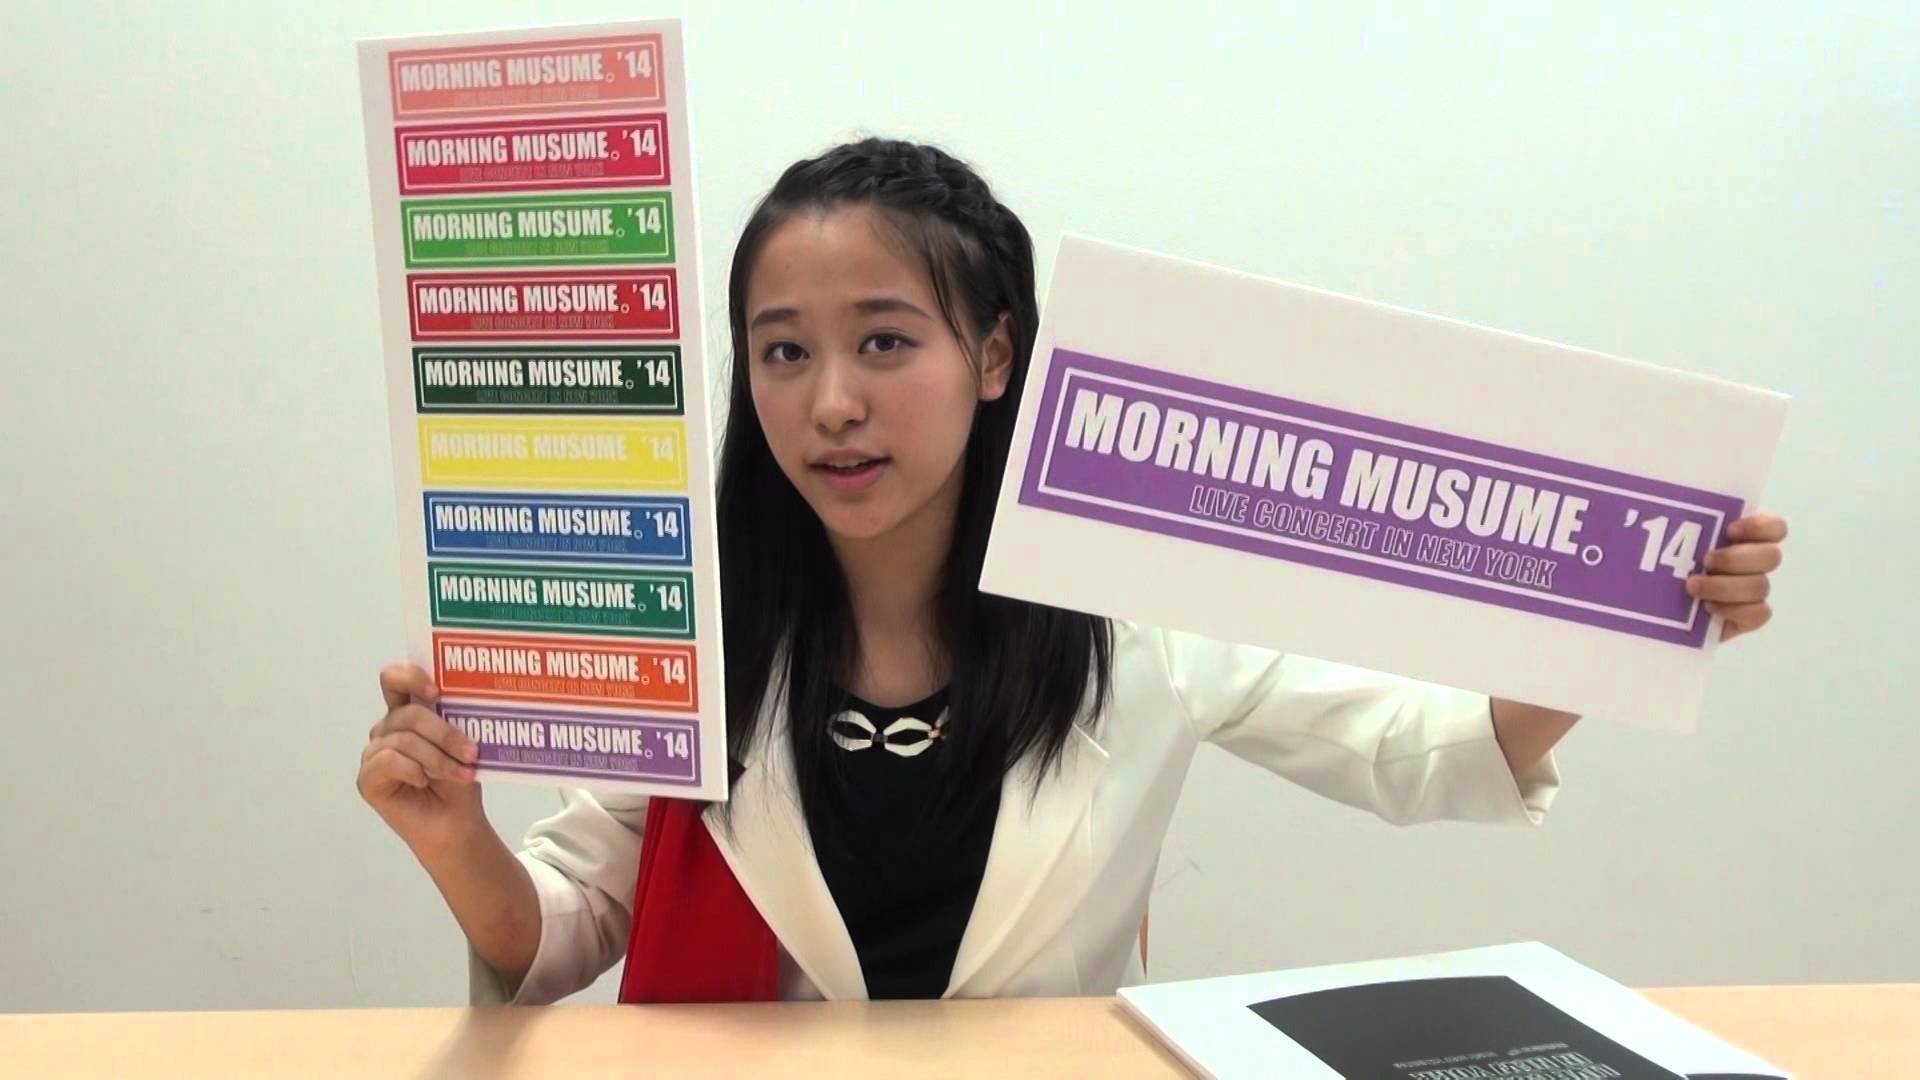 Morning Musume '14 USA Comment Video